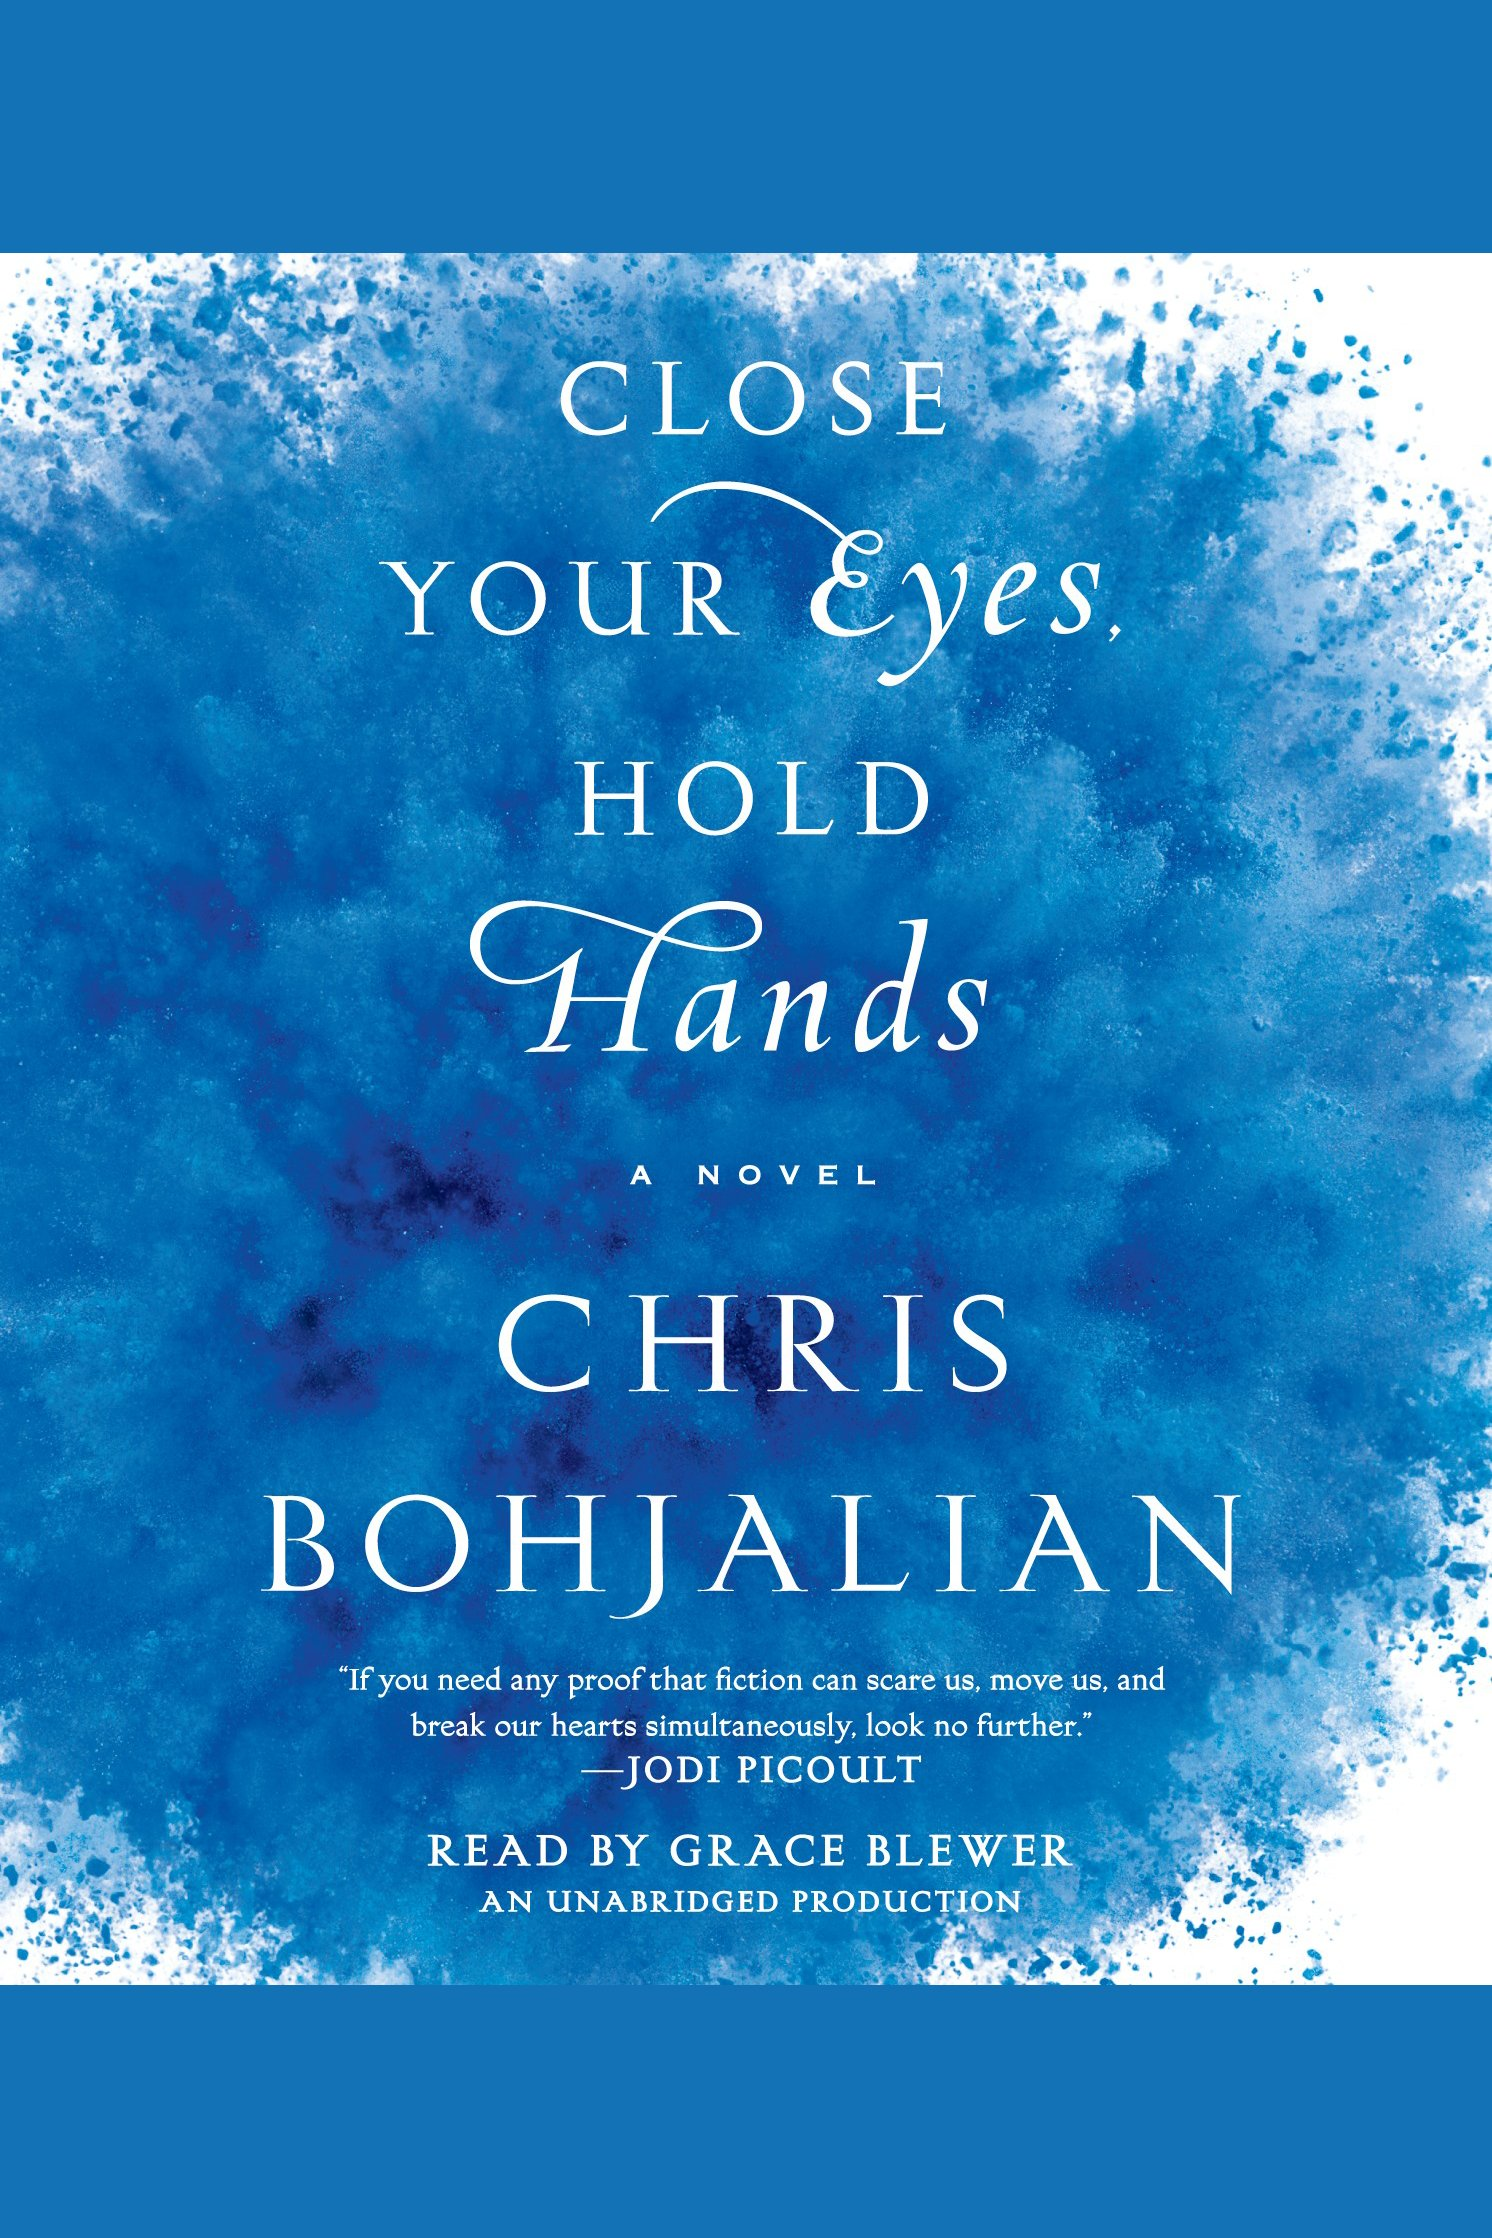 Close your eyes, hold hands cover image